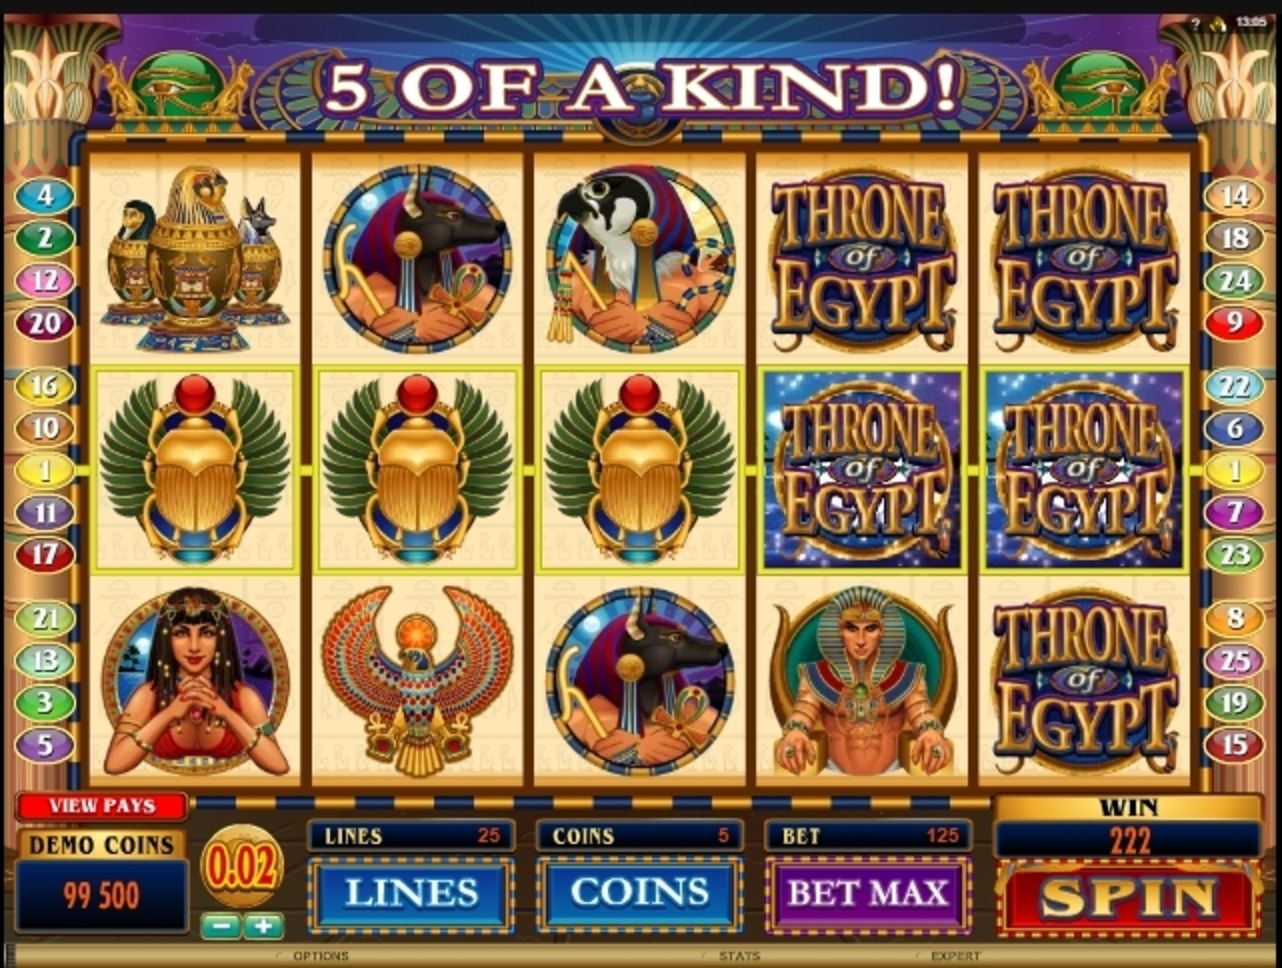 Win Money in Throne of Egypt Free Slot Game by Microgaming